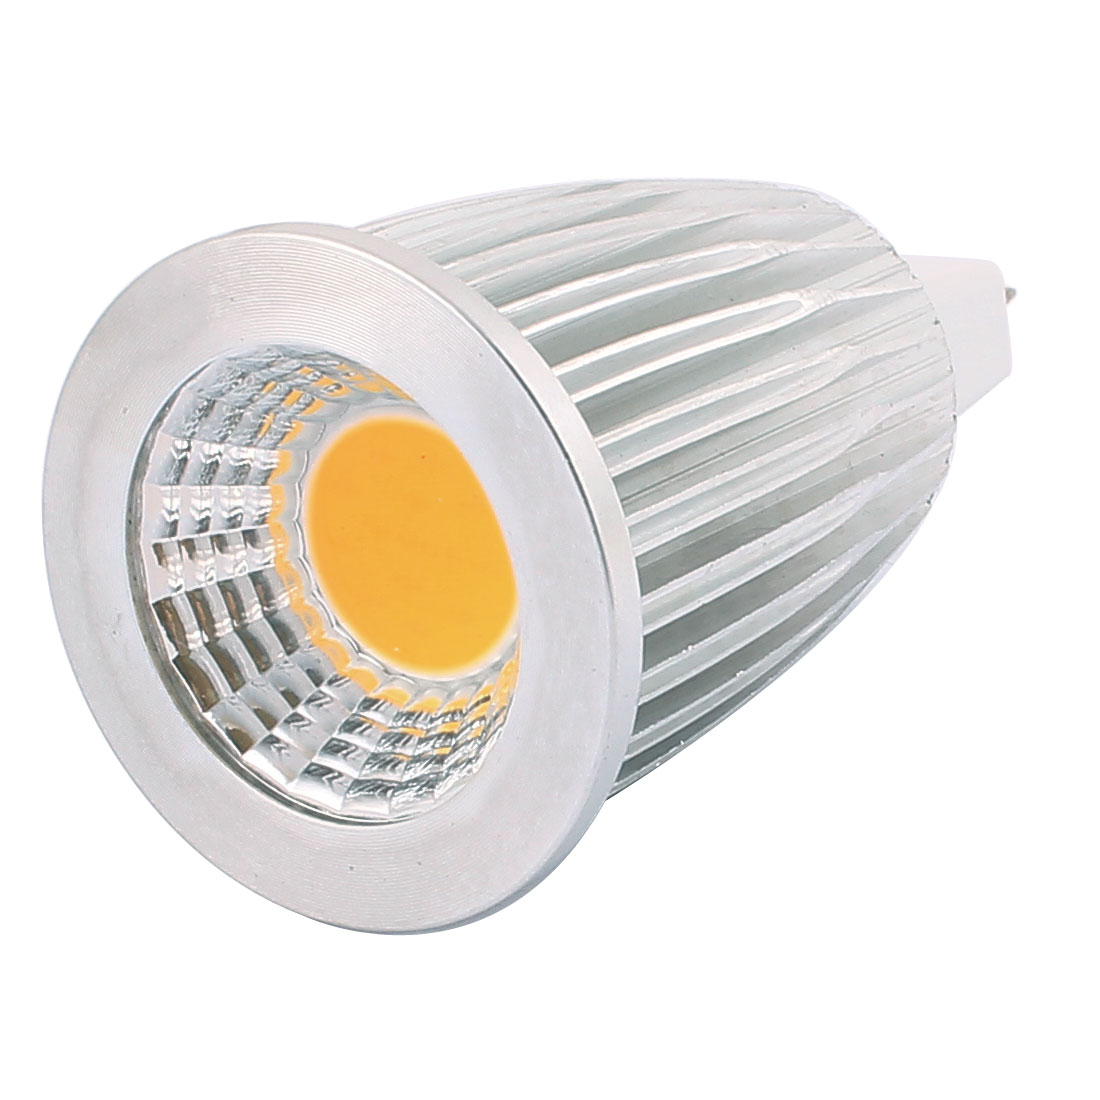 DC12V 7W MR16 COB LED Spotlight Lamp Bulb Energy Saving Downlight Warm White